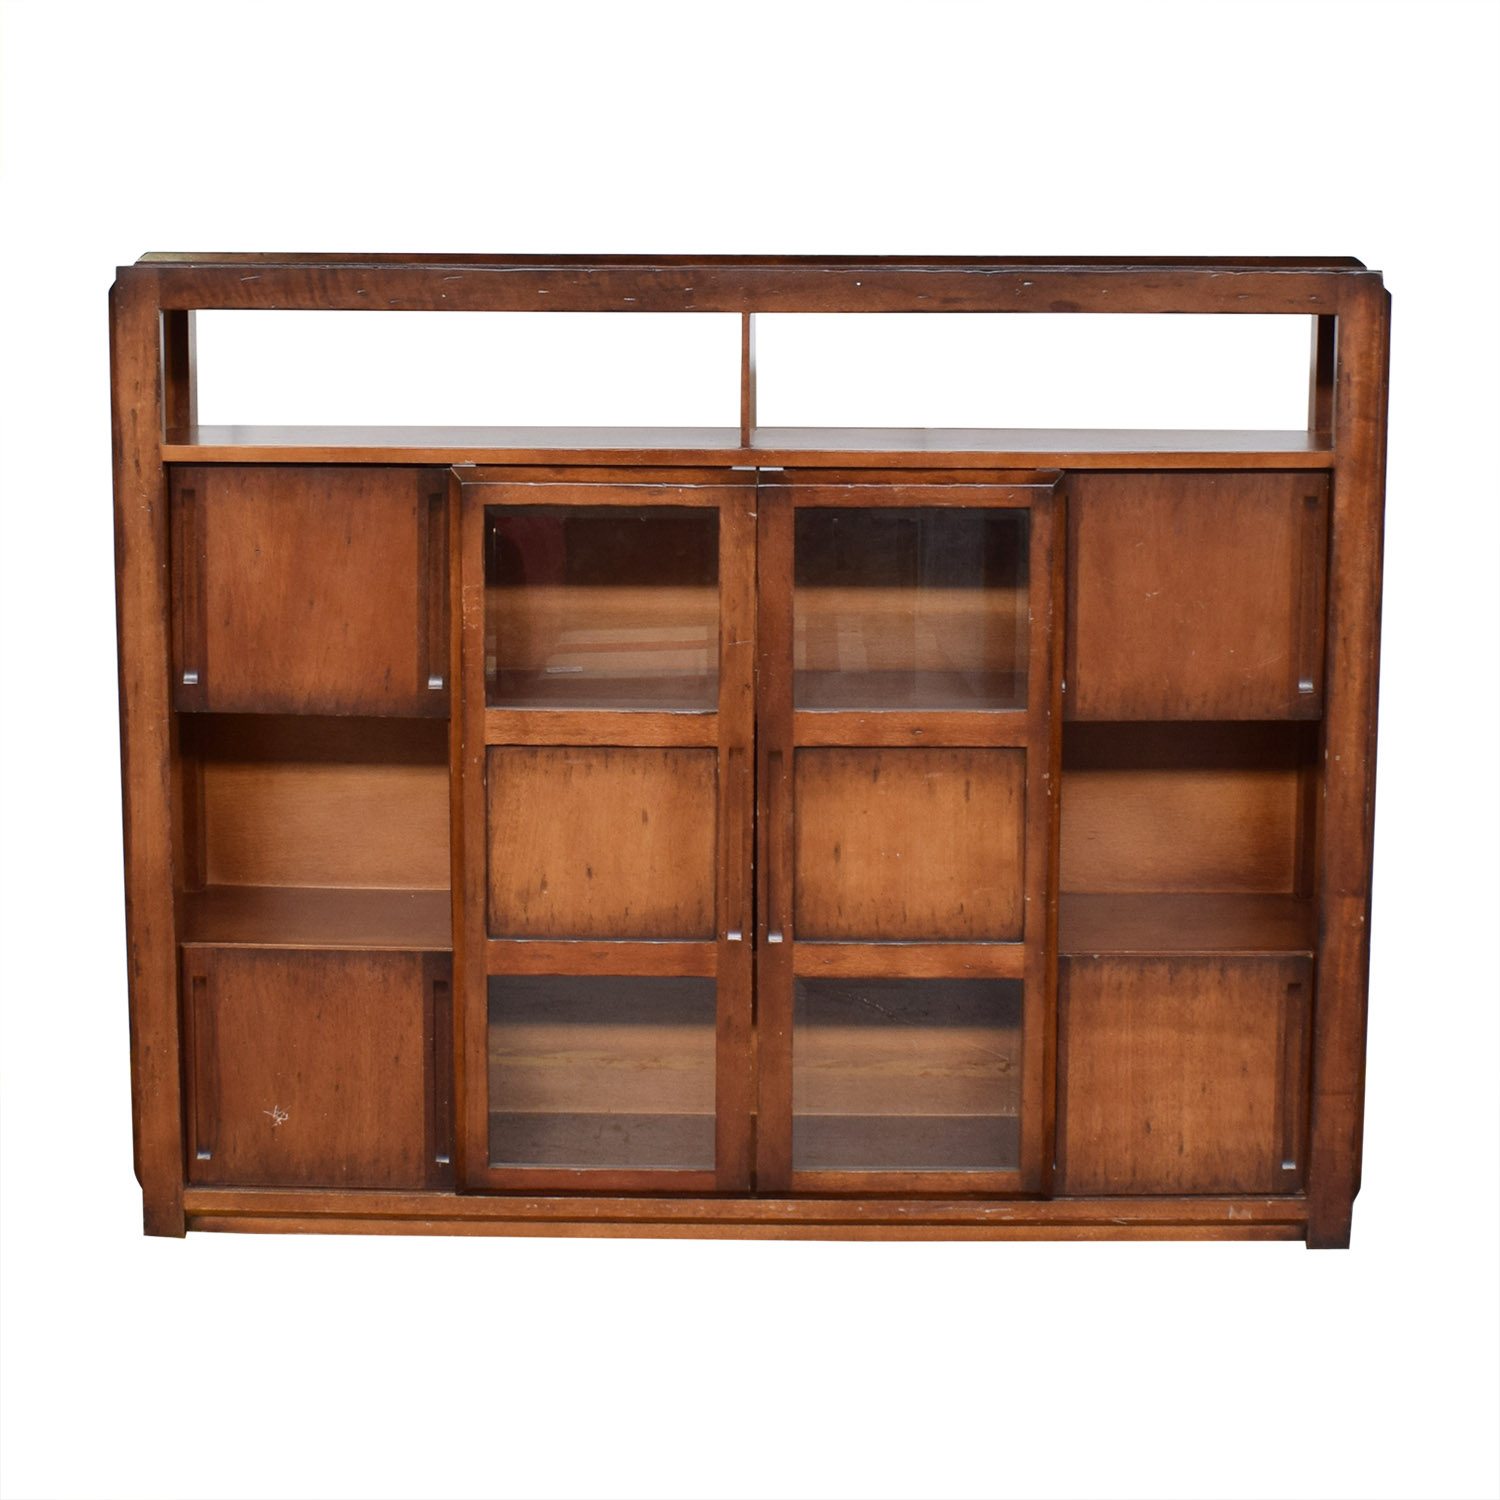 South Cone Furniture Modular Bookcase sale